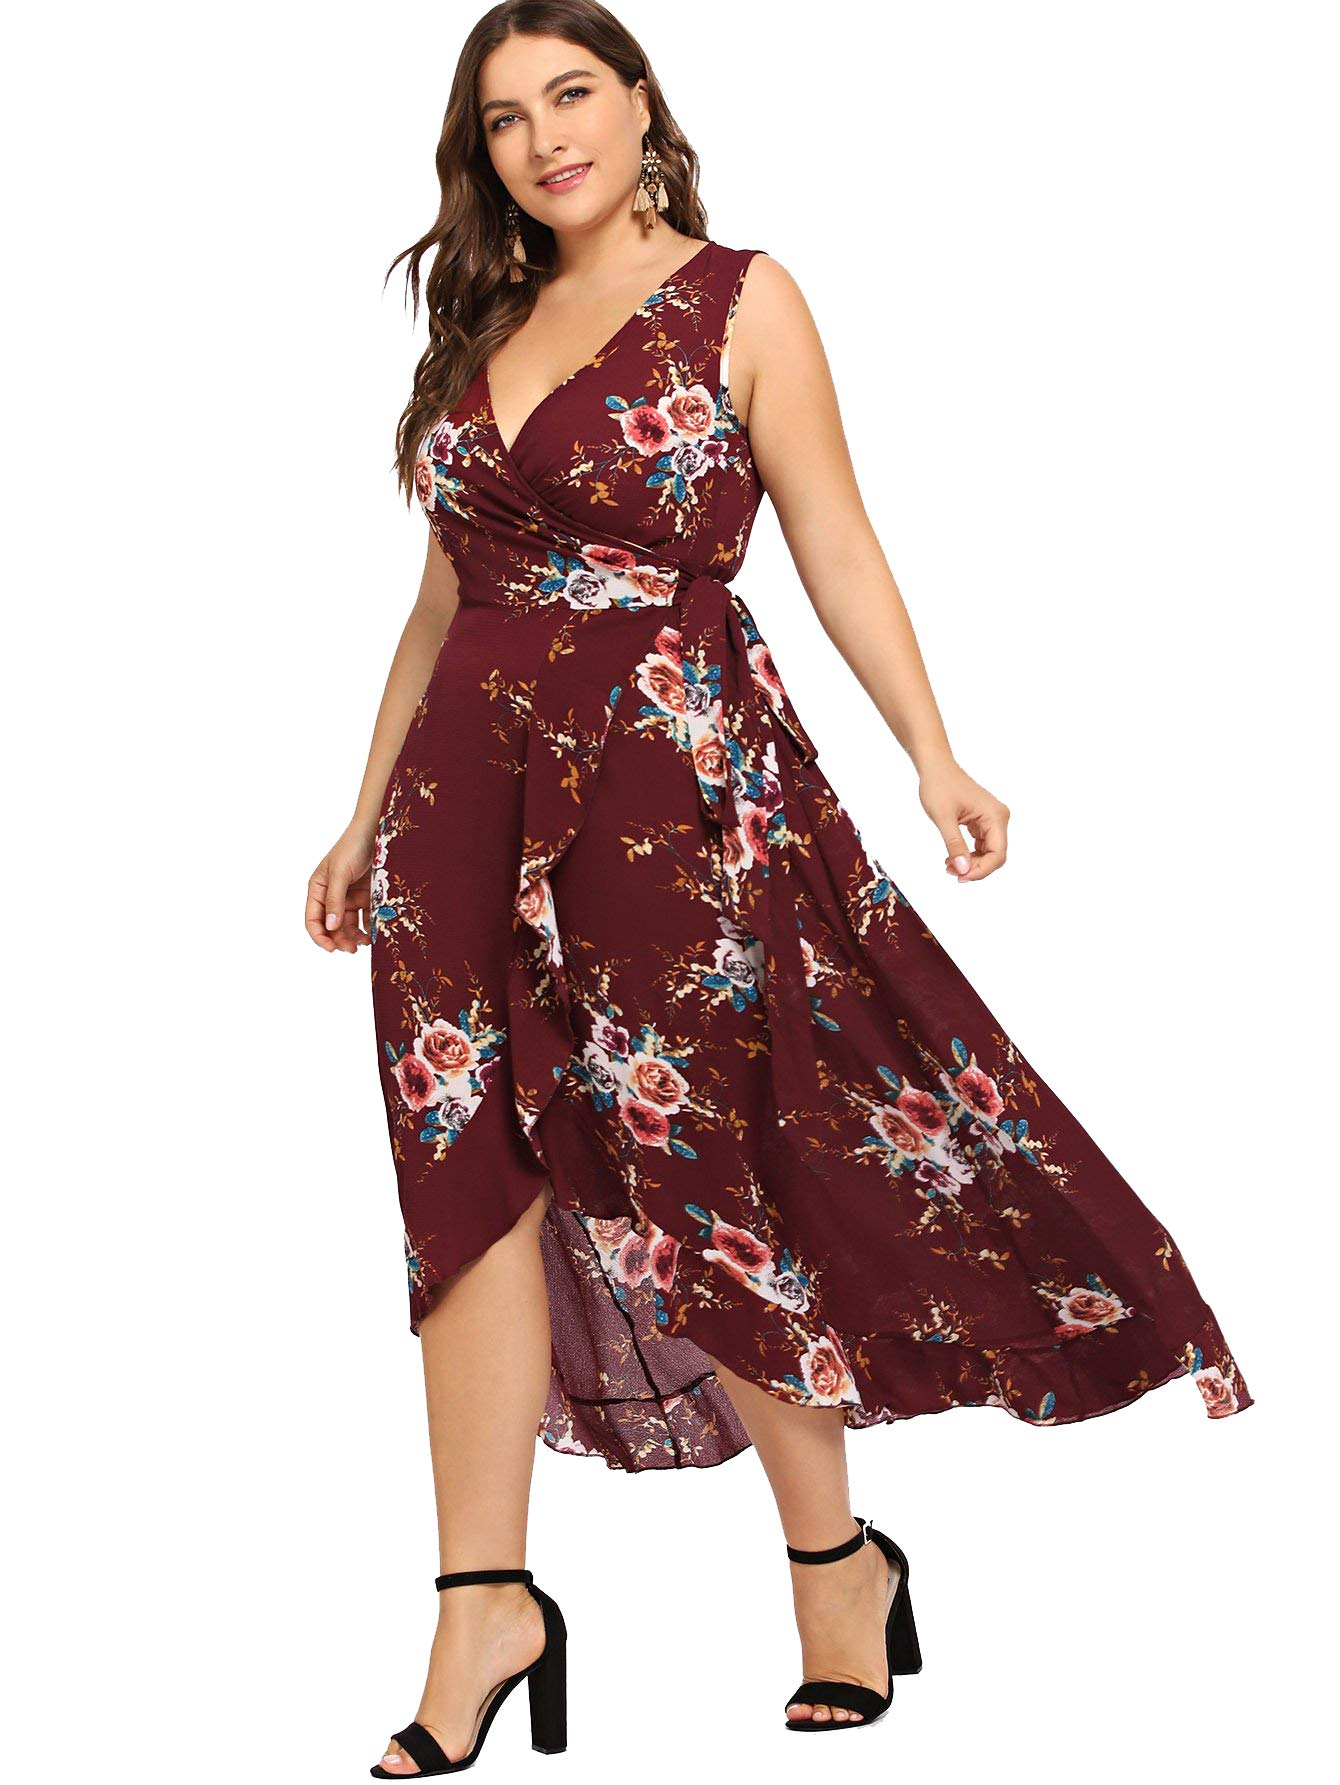 Milumia Plus Size Floral Sundress Fit Flare Wrap V Neck Empire Waist Party Cocktail Sleeveless Maxi Dress Red 1X